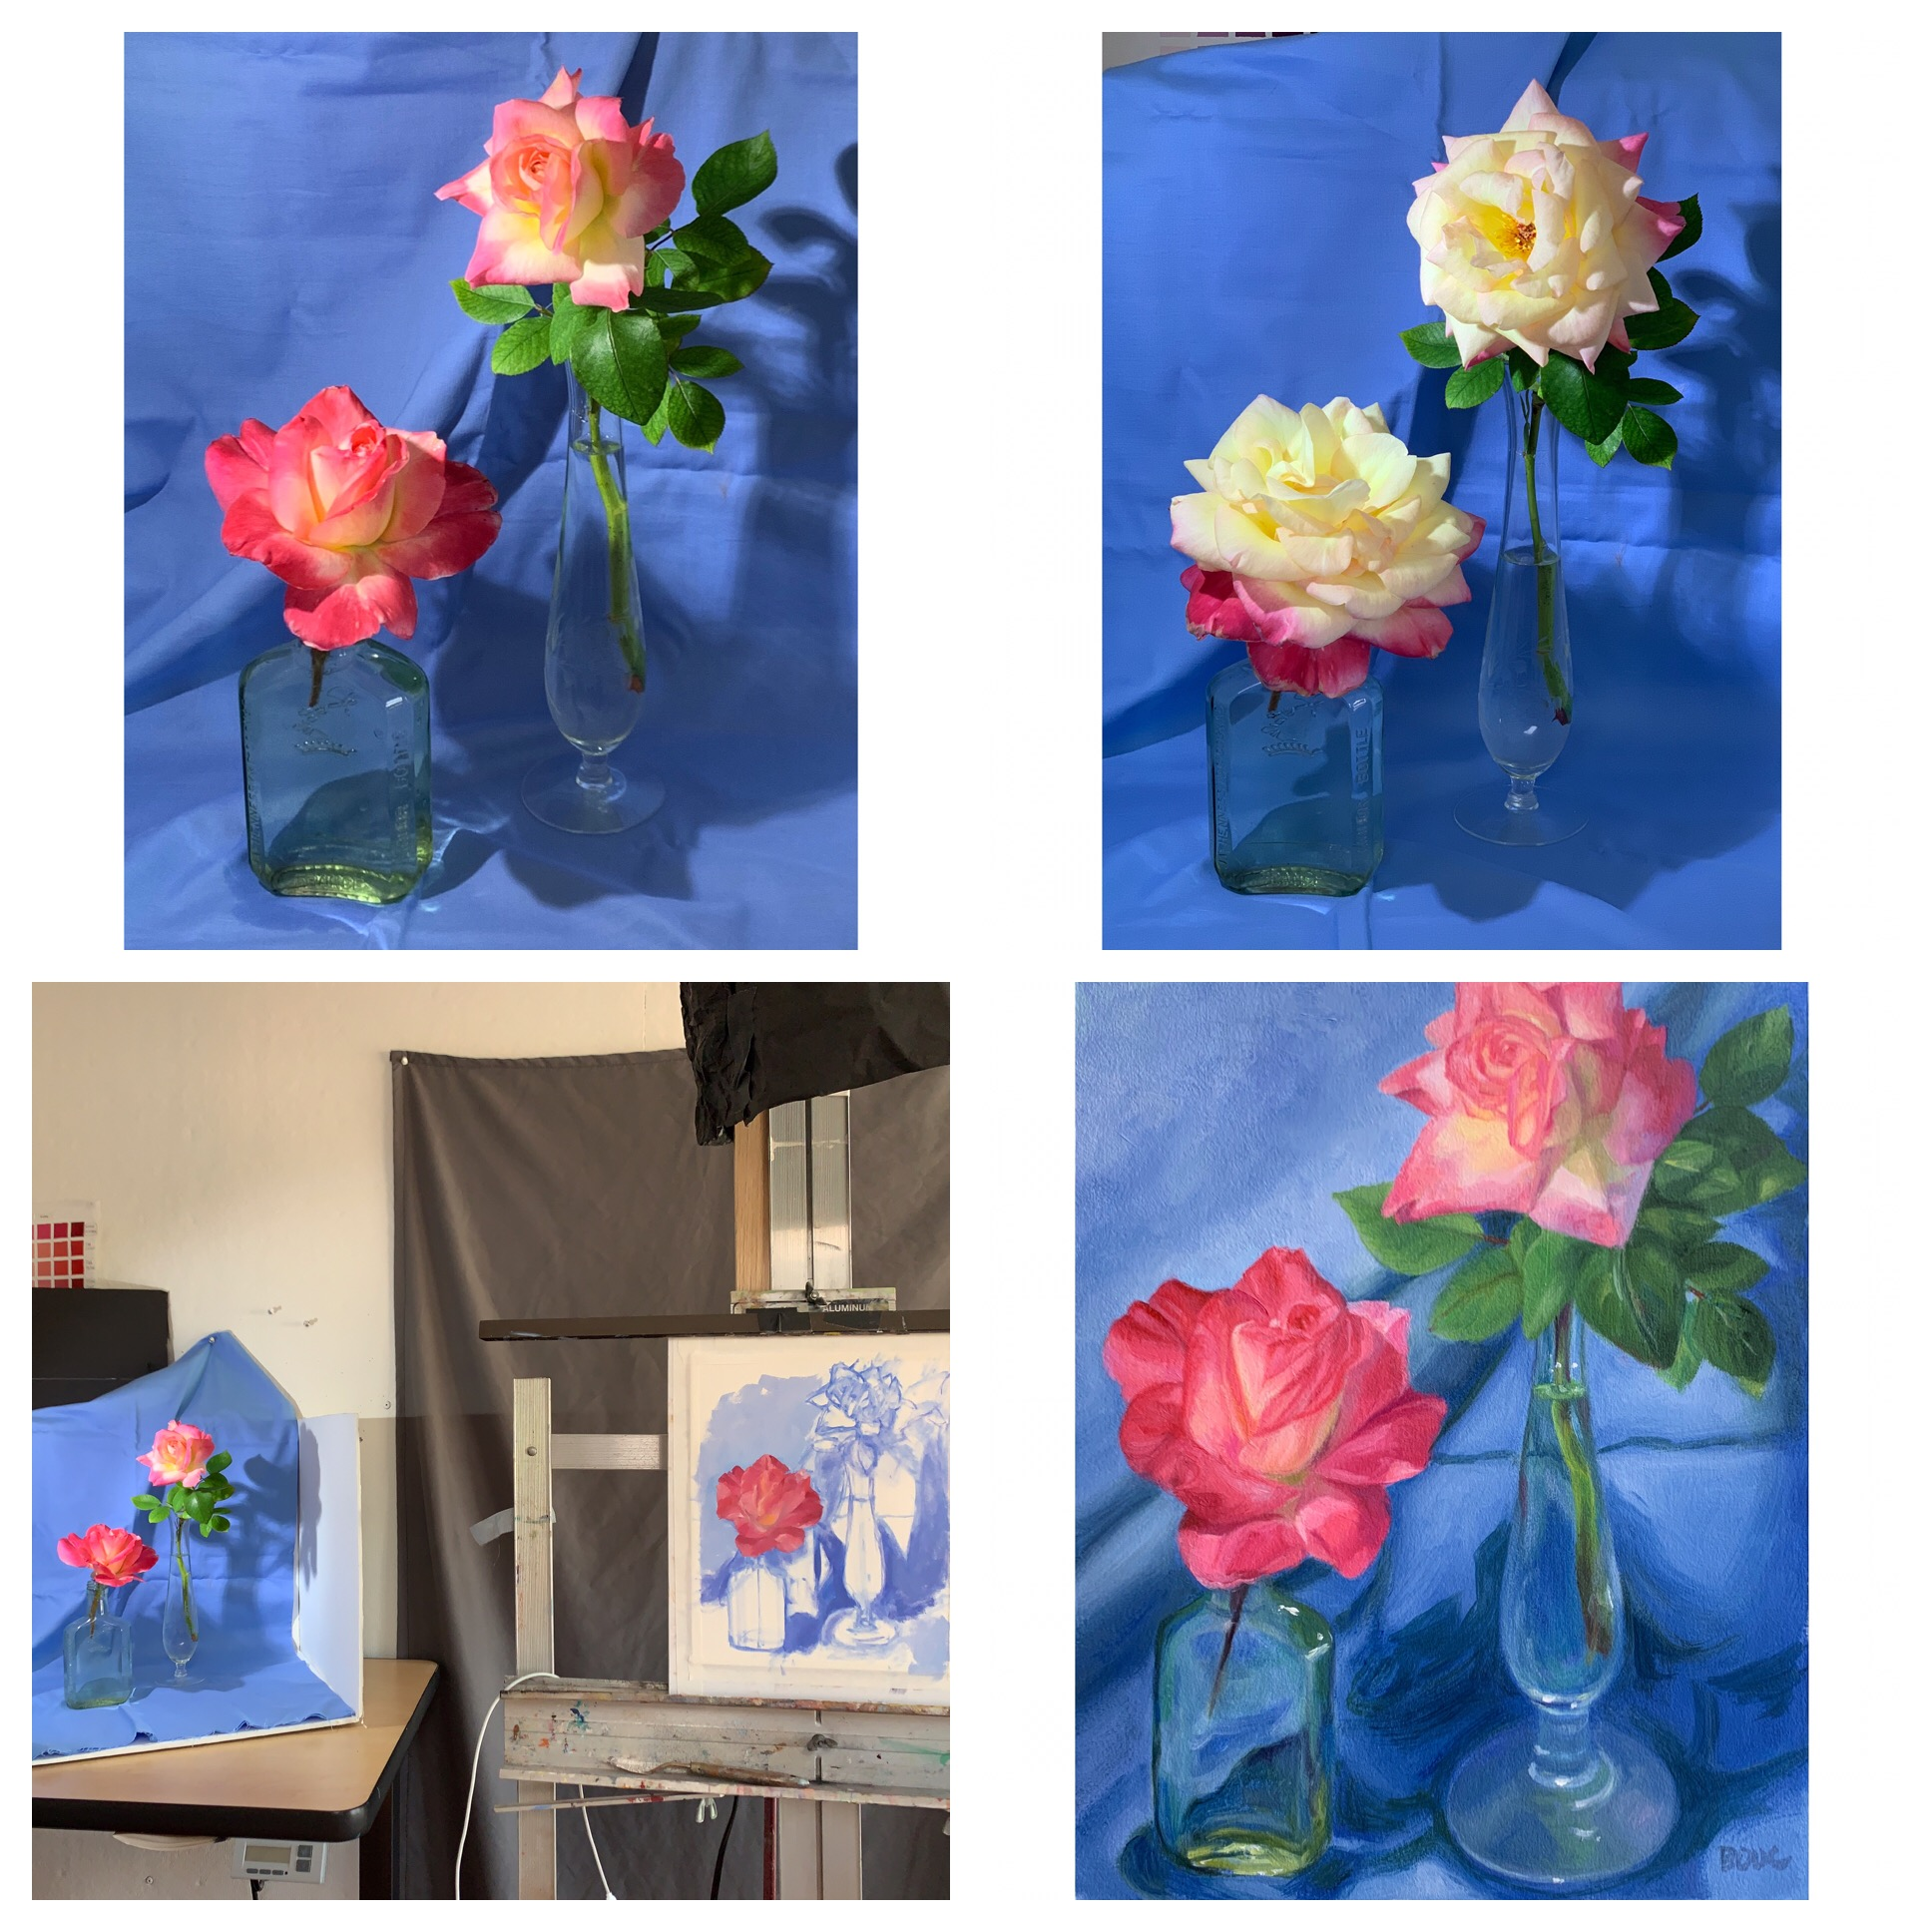 Clockwise from top left: Photo of roses day 1, Photo of same roses day 2, finished painting, WIP day one with setup.